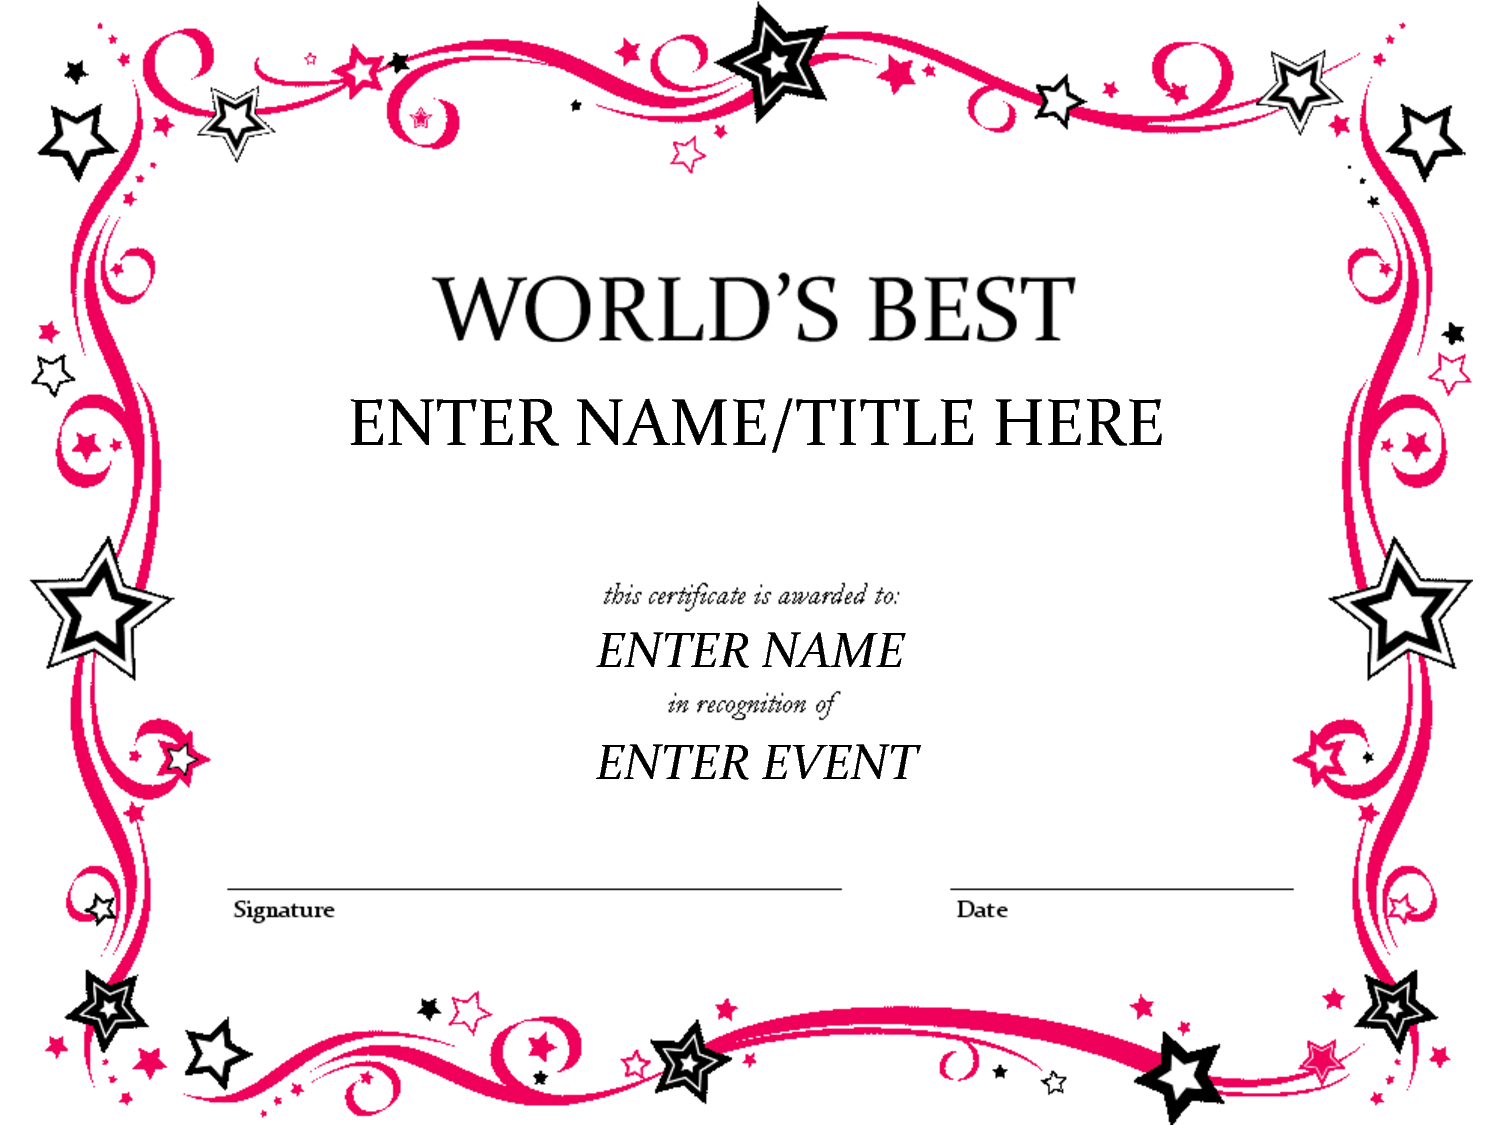 Award Certificate Template More Ideas Free Award Certificate Templates For Word